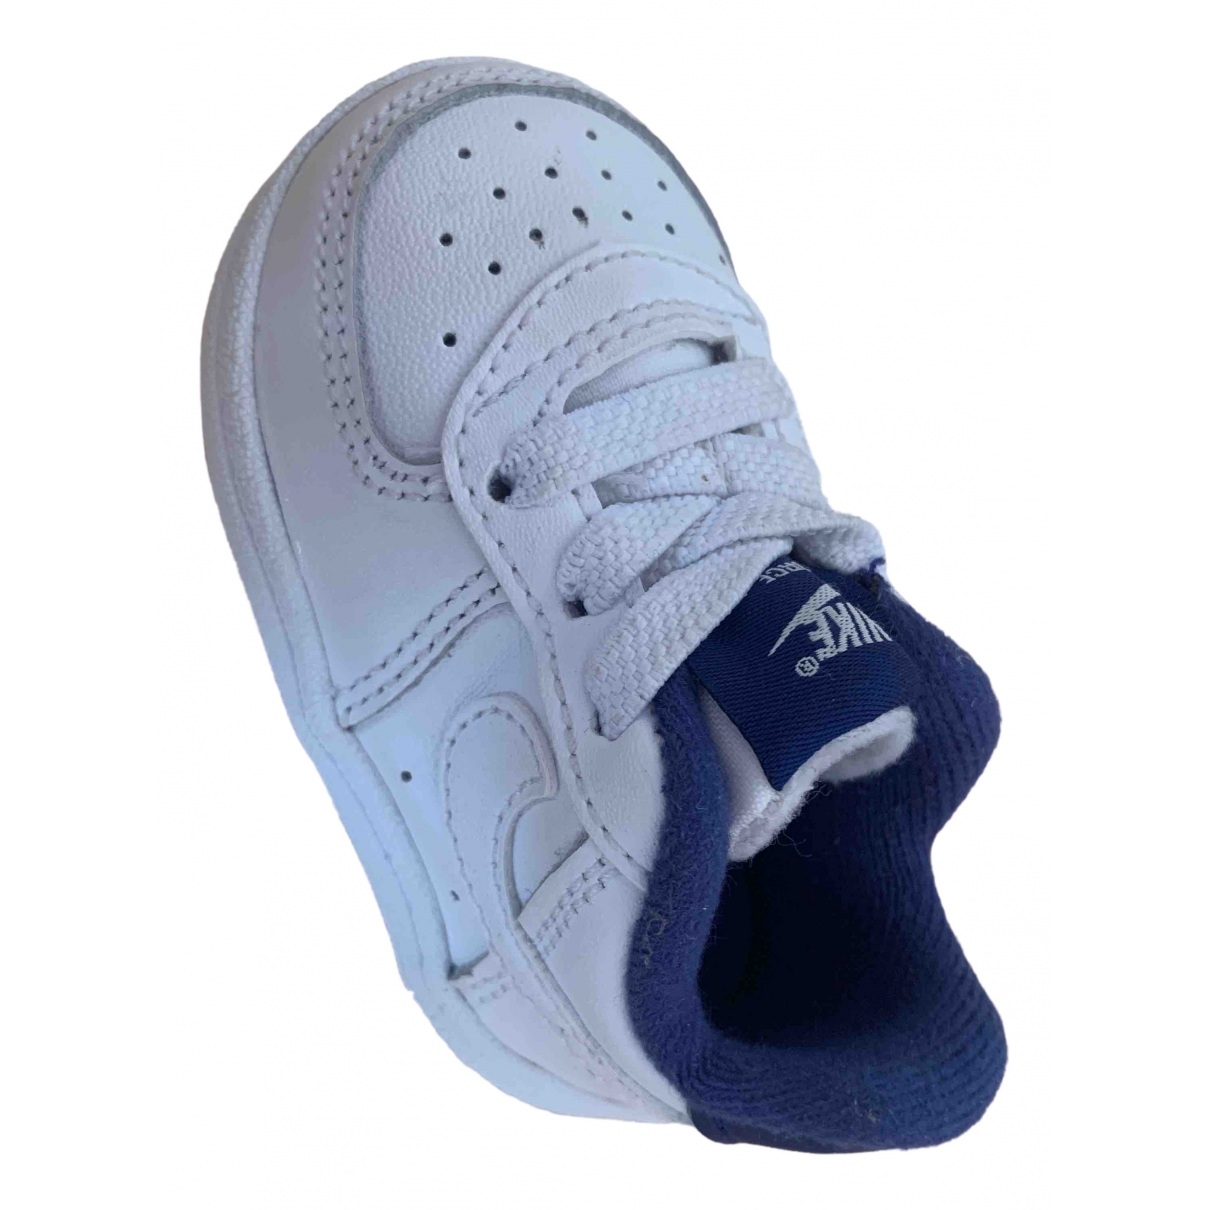 Nike Air Force 1 White Leather Trainers for Kids 17 EU